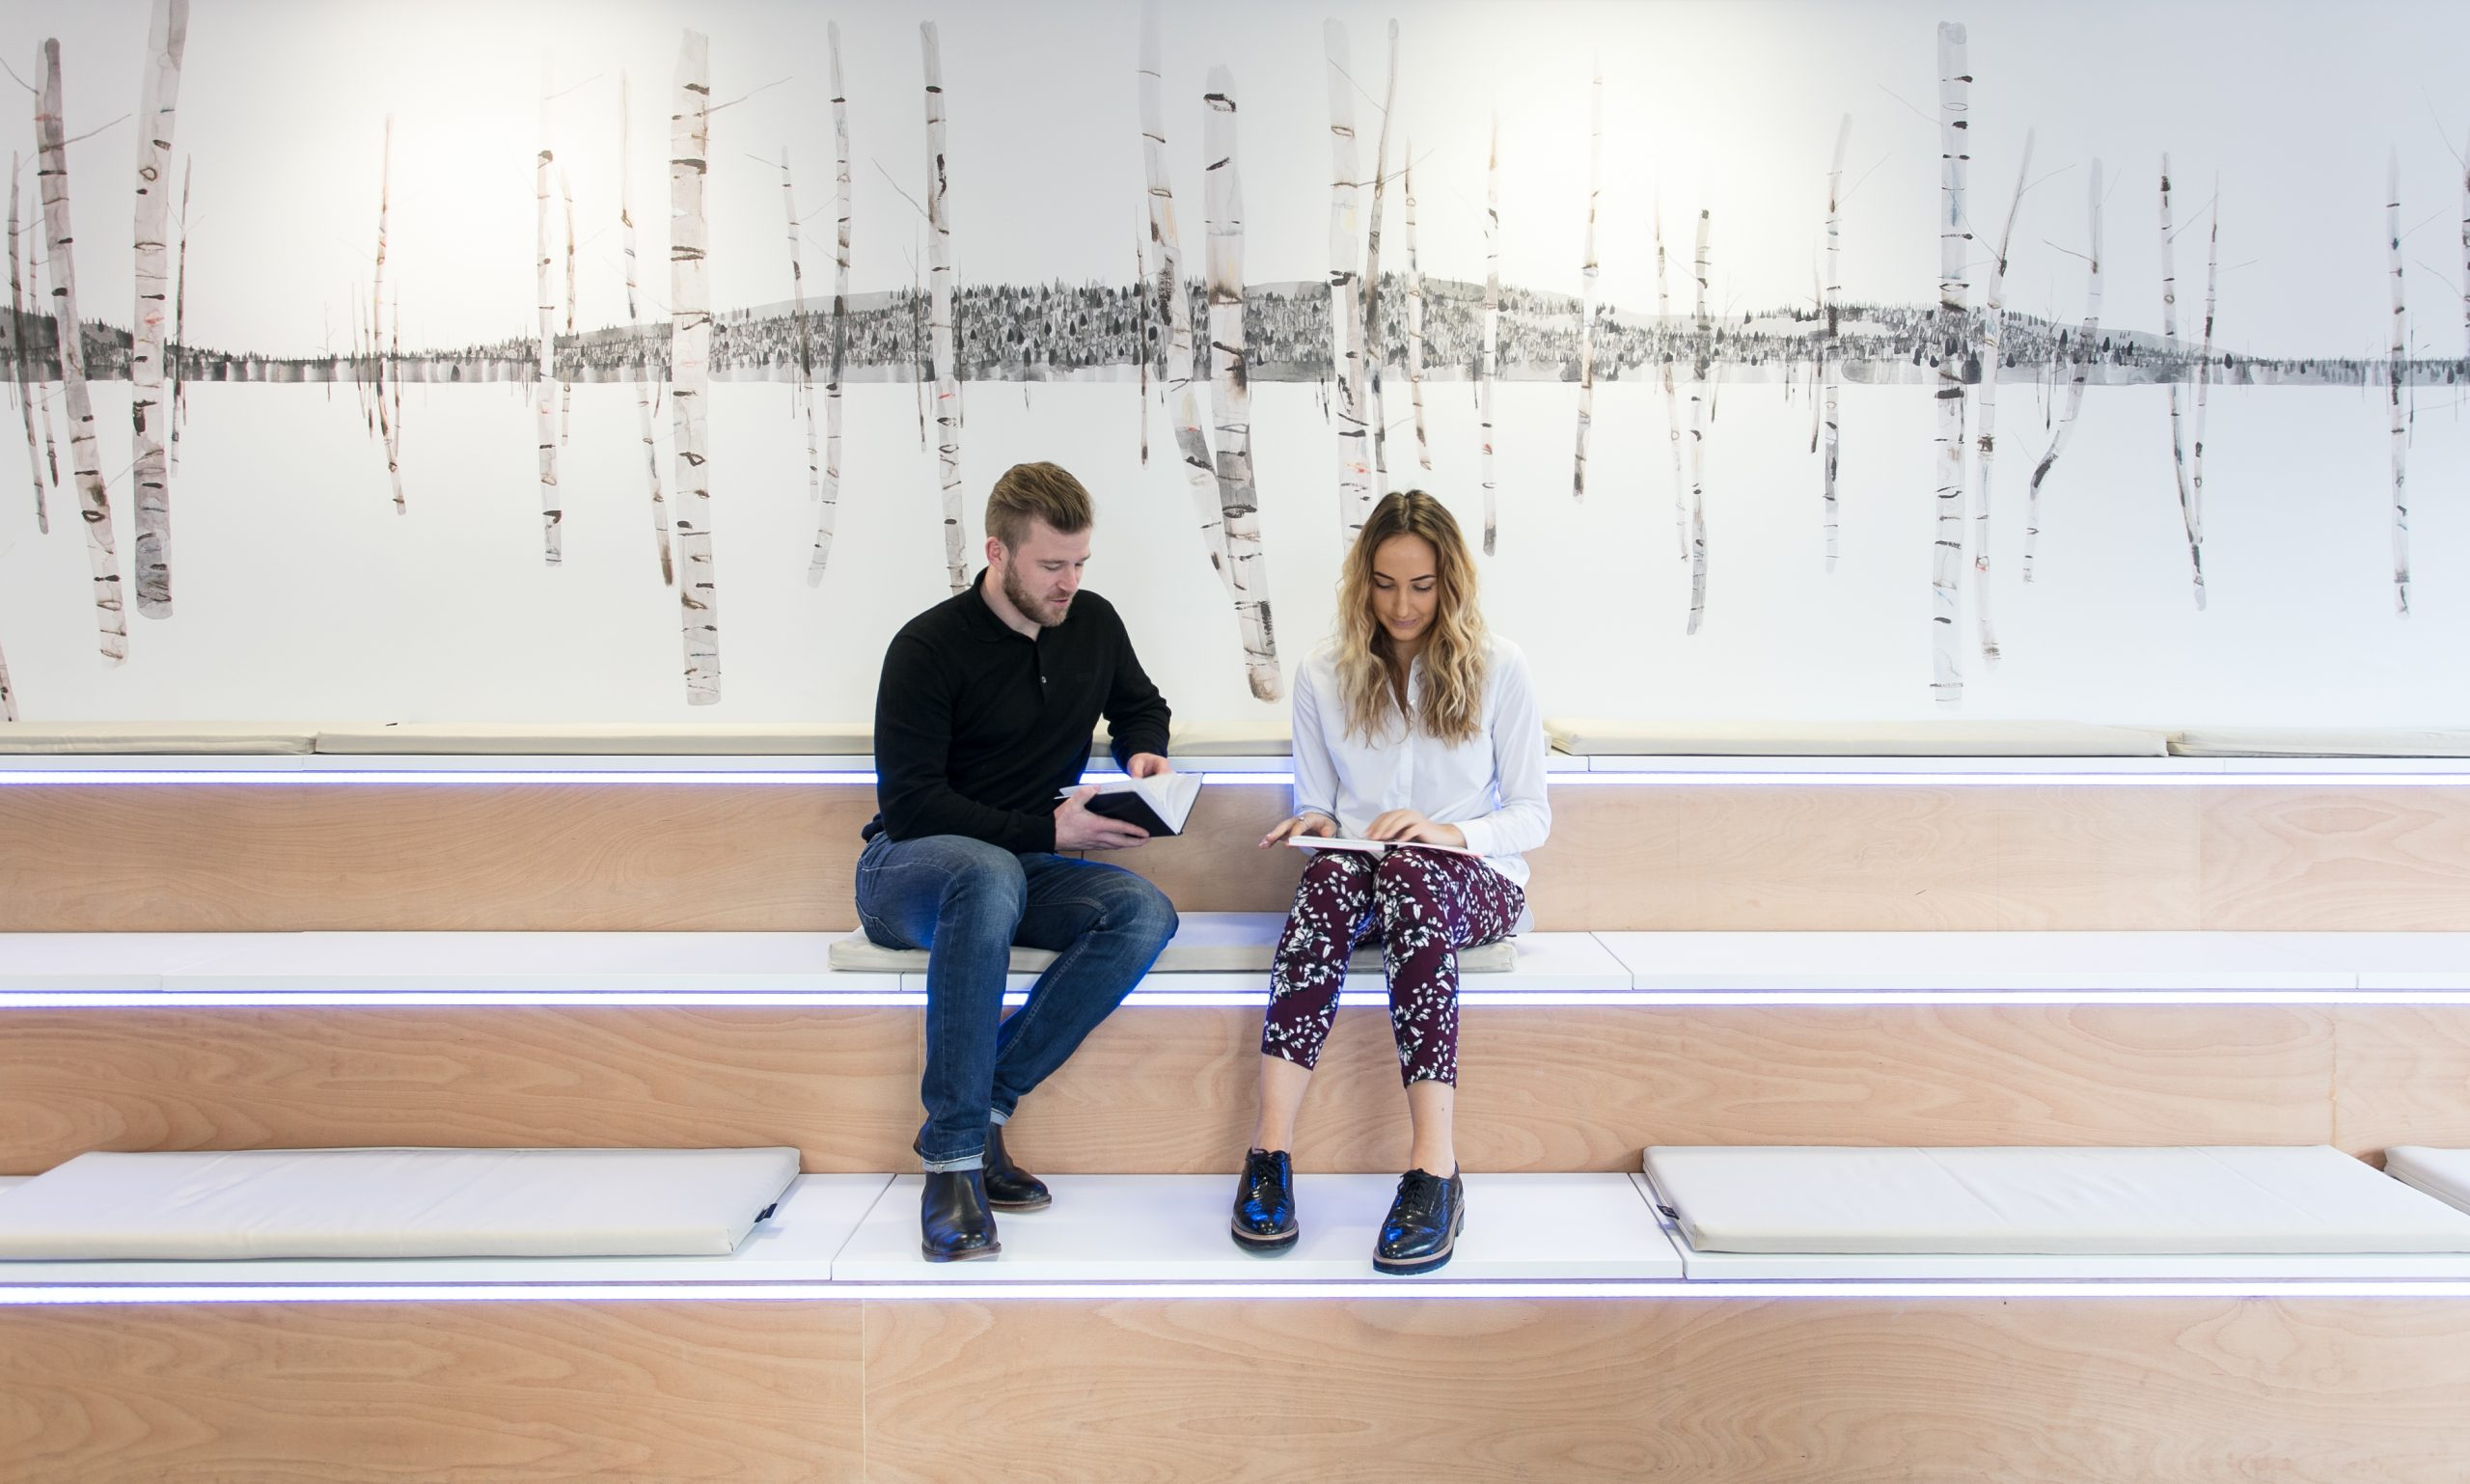 two people sat in front of beyond the birch mural